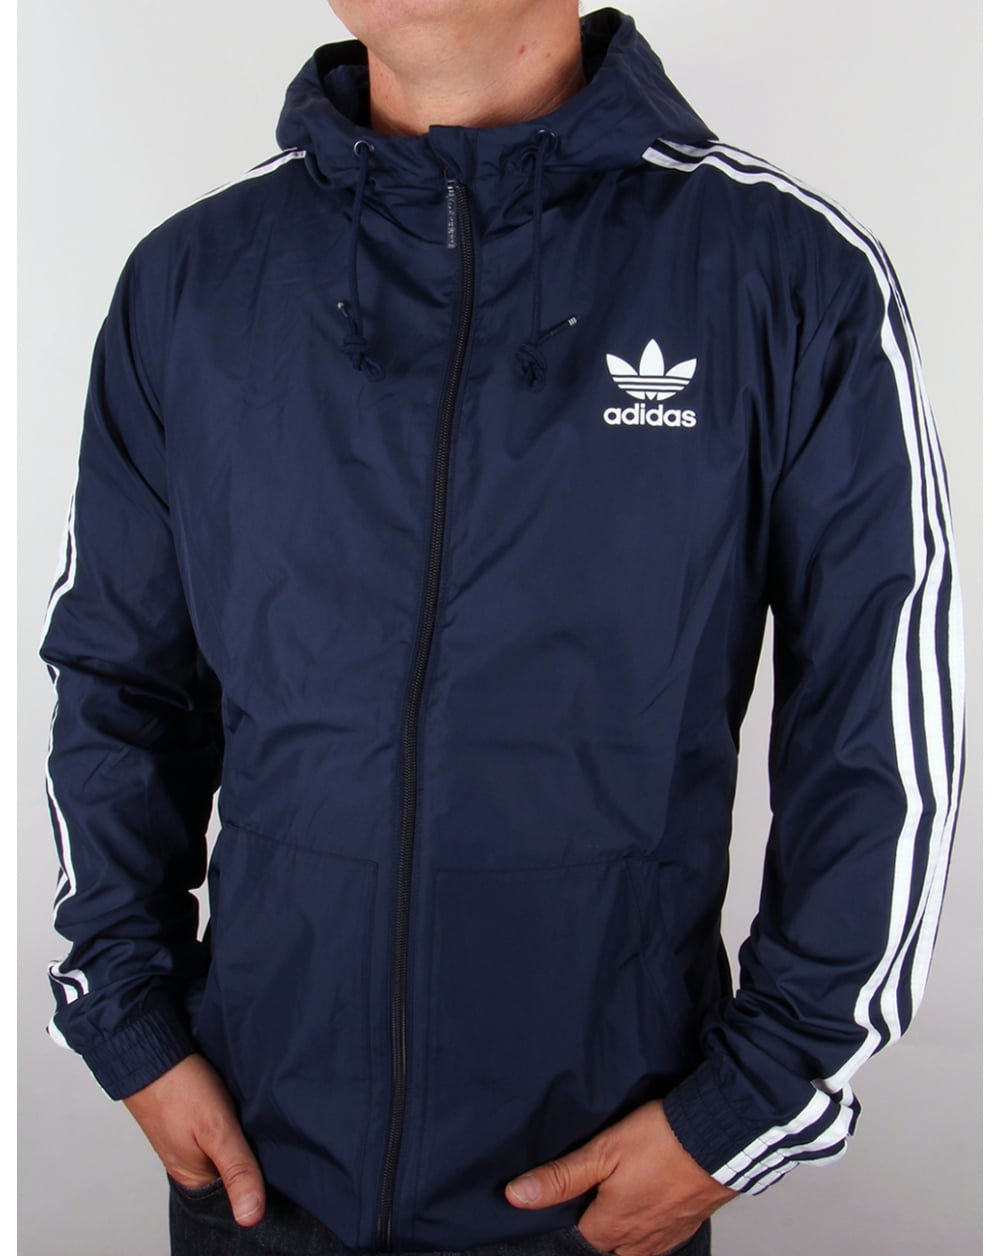 adidas originals itasca windbreaker navy originals windrunnder. Black Bedroom Furniture Sets. Home Design Ideas